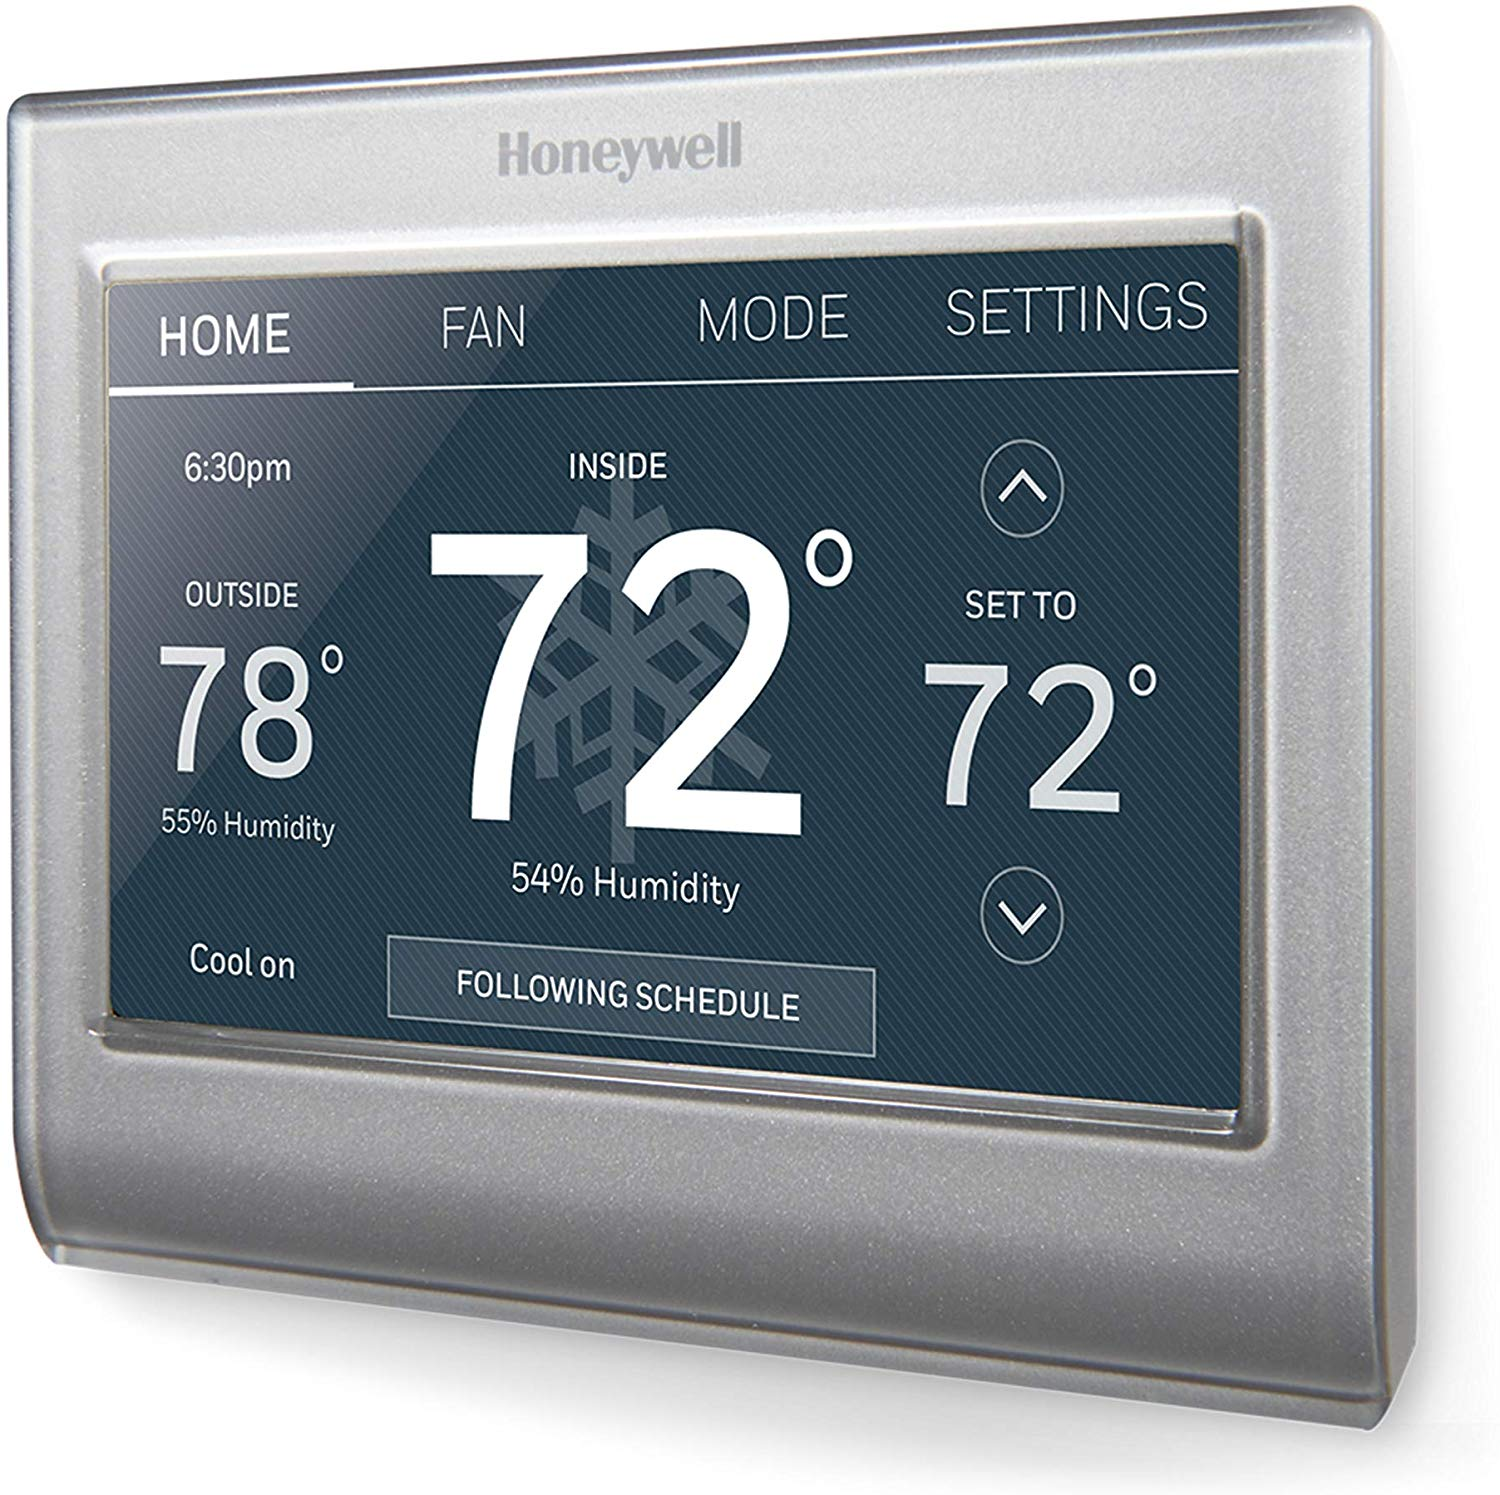 Honeywell Color Wi-Fi Smart Thermostat